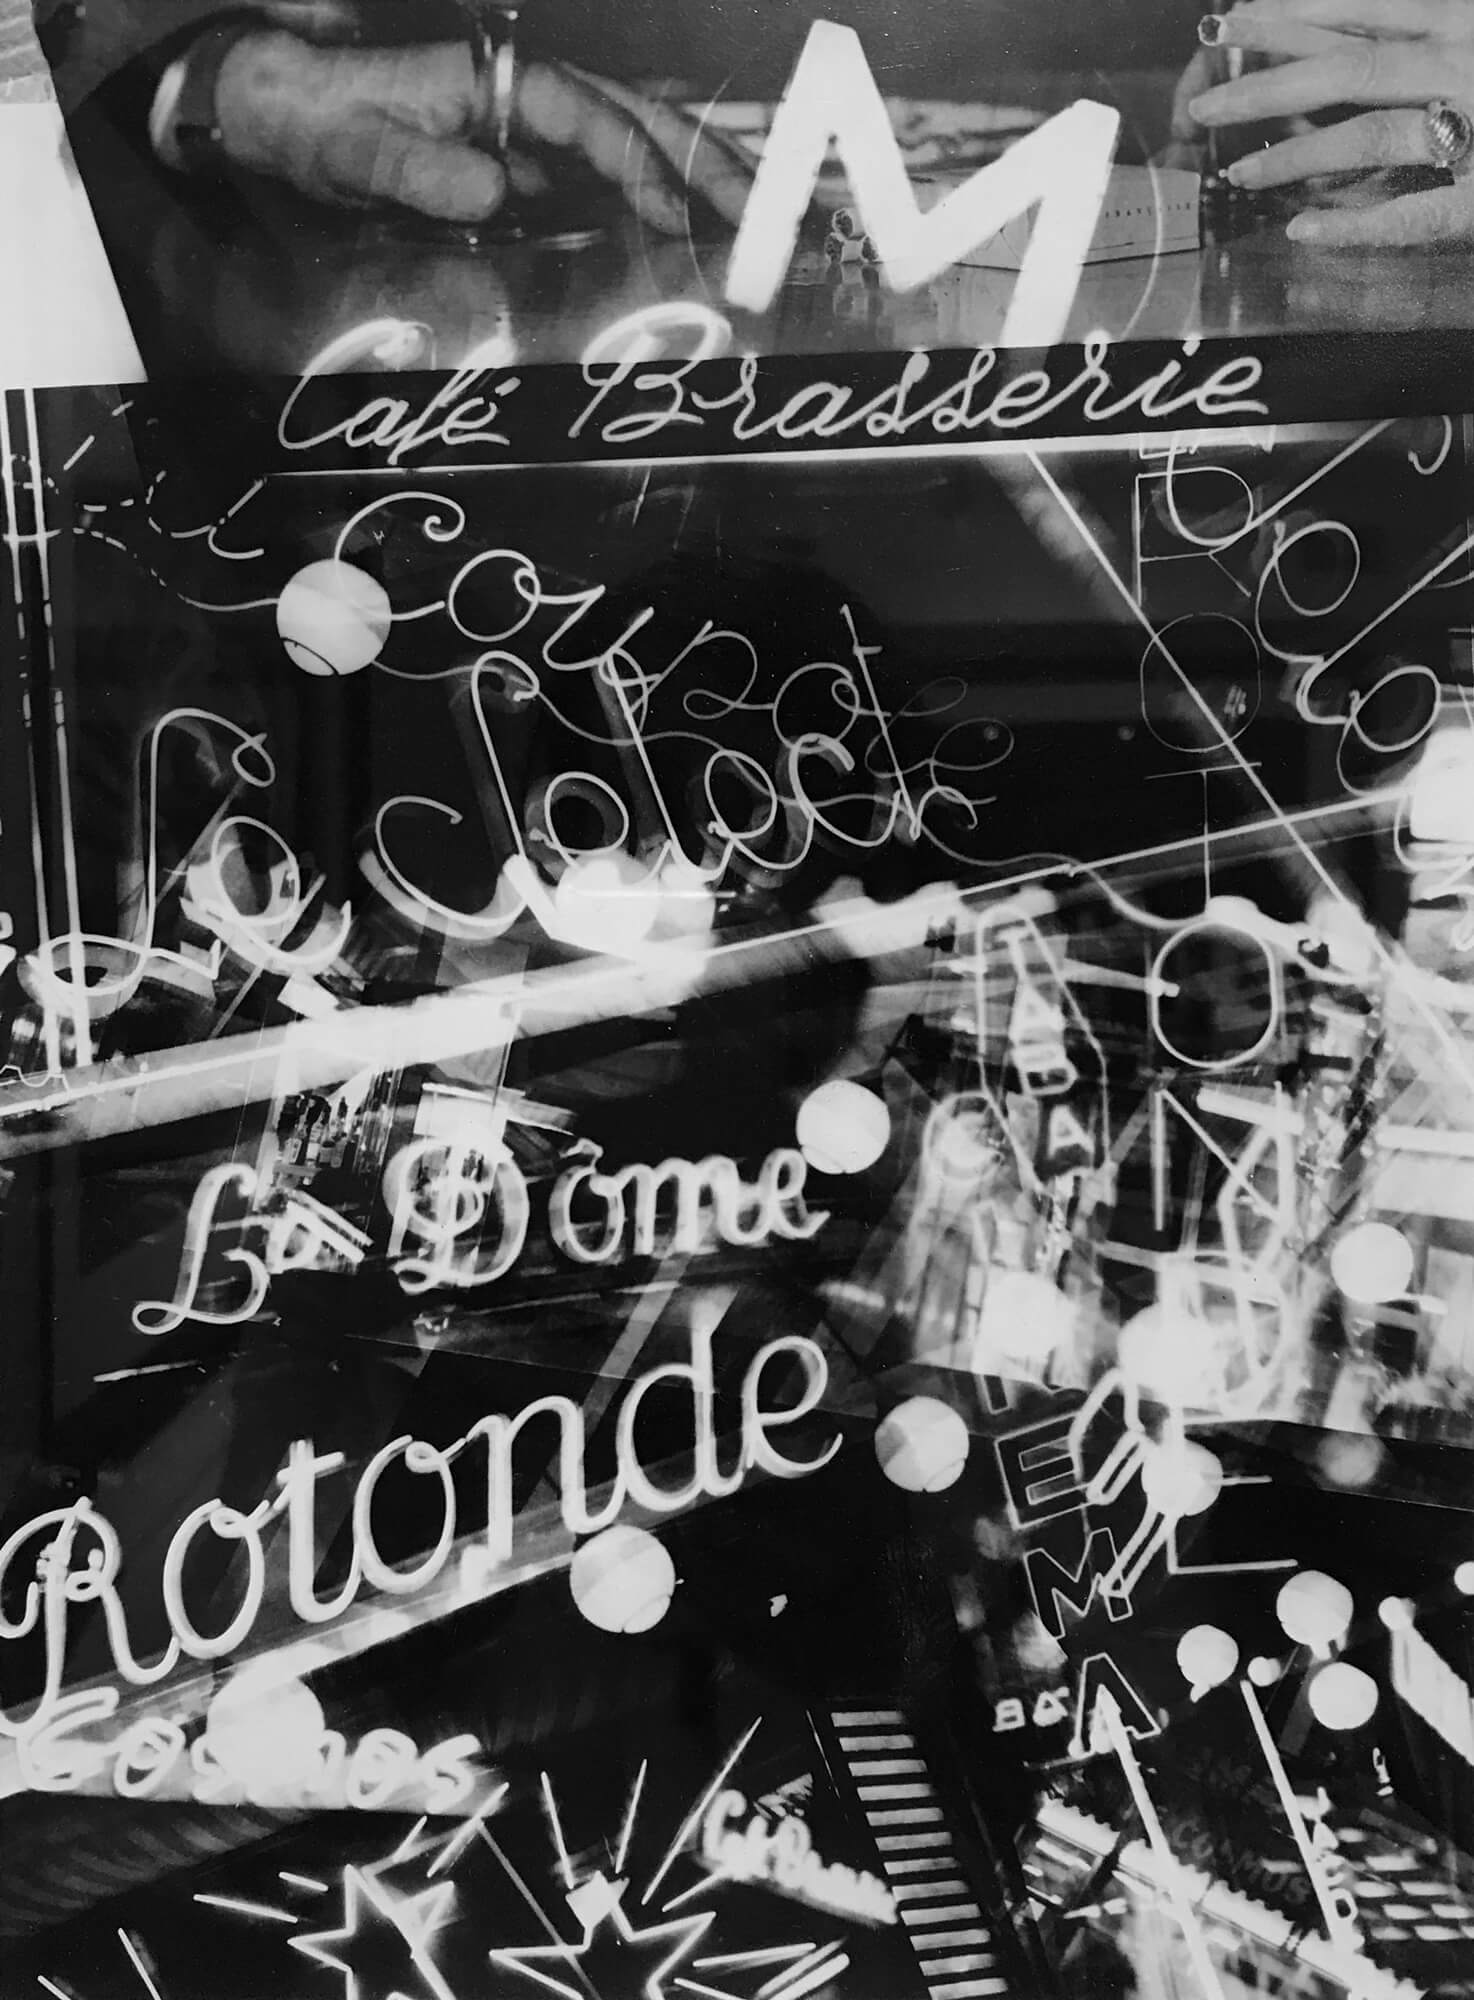 MAN RAY COLLAGE MONTAGE OF PARIS CAFE